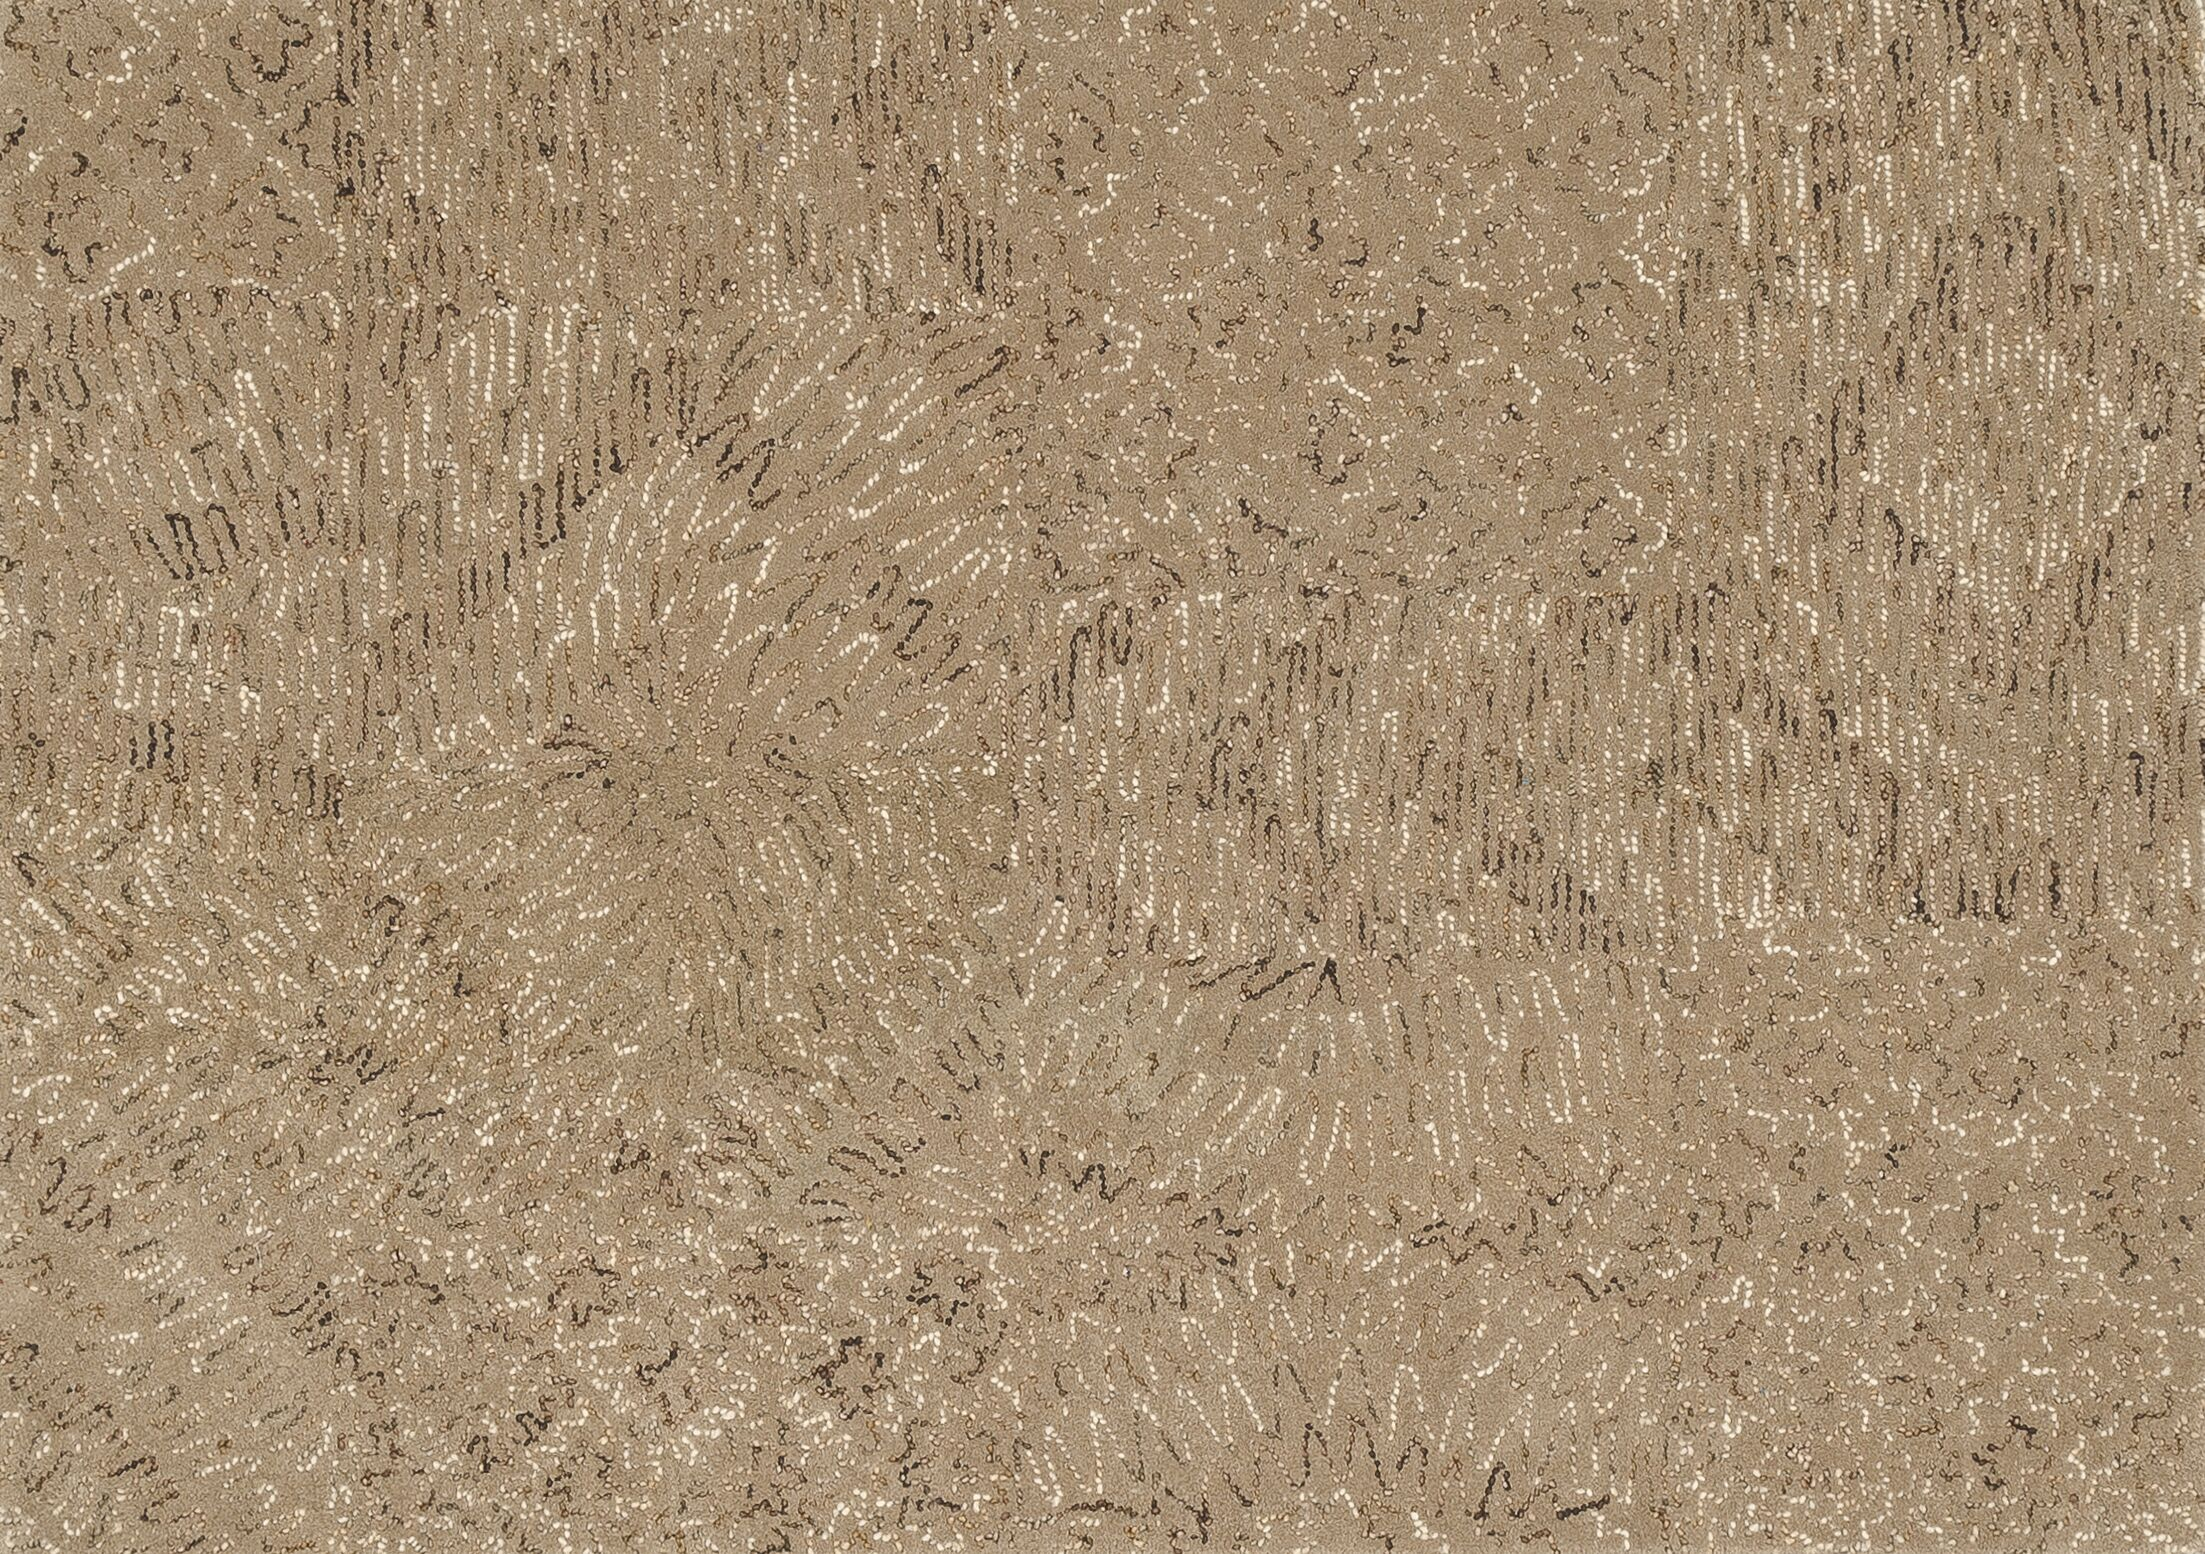 Zager Hand-Tufted Brown Area Rug Rug Size: Rectangle 3'6